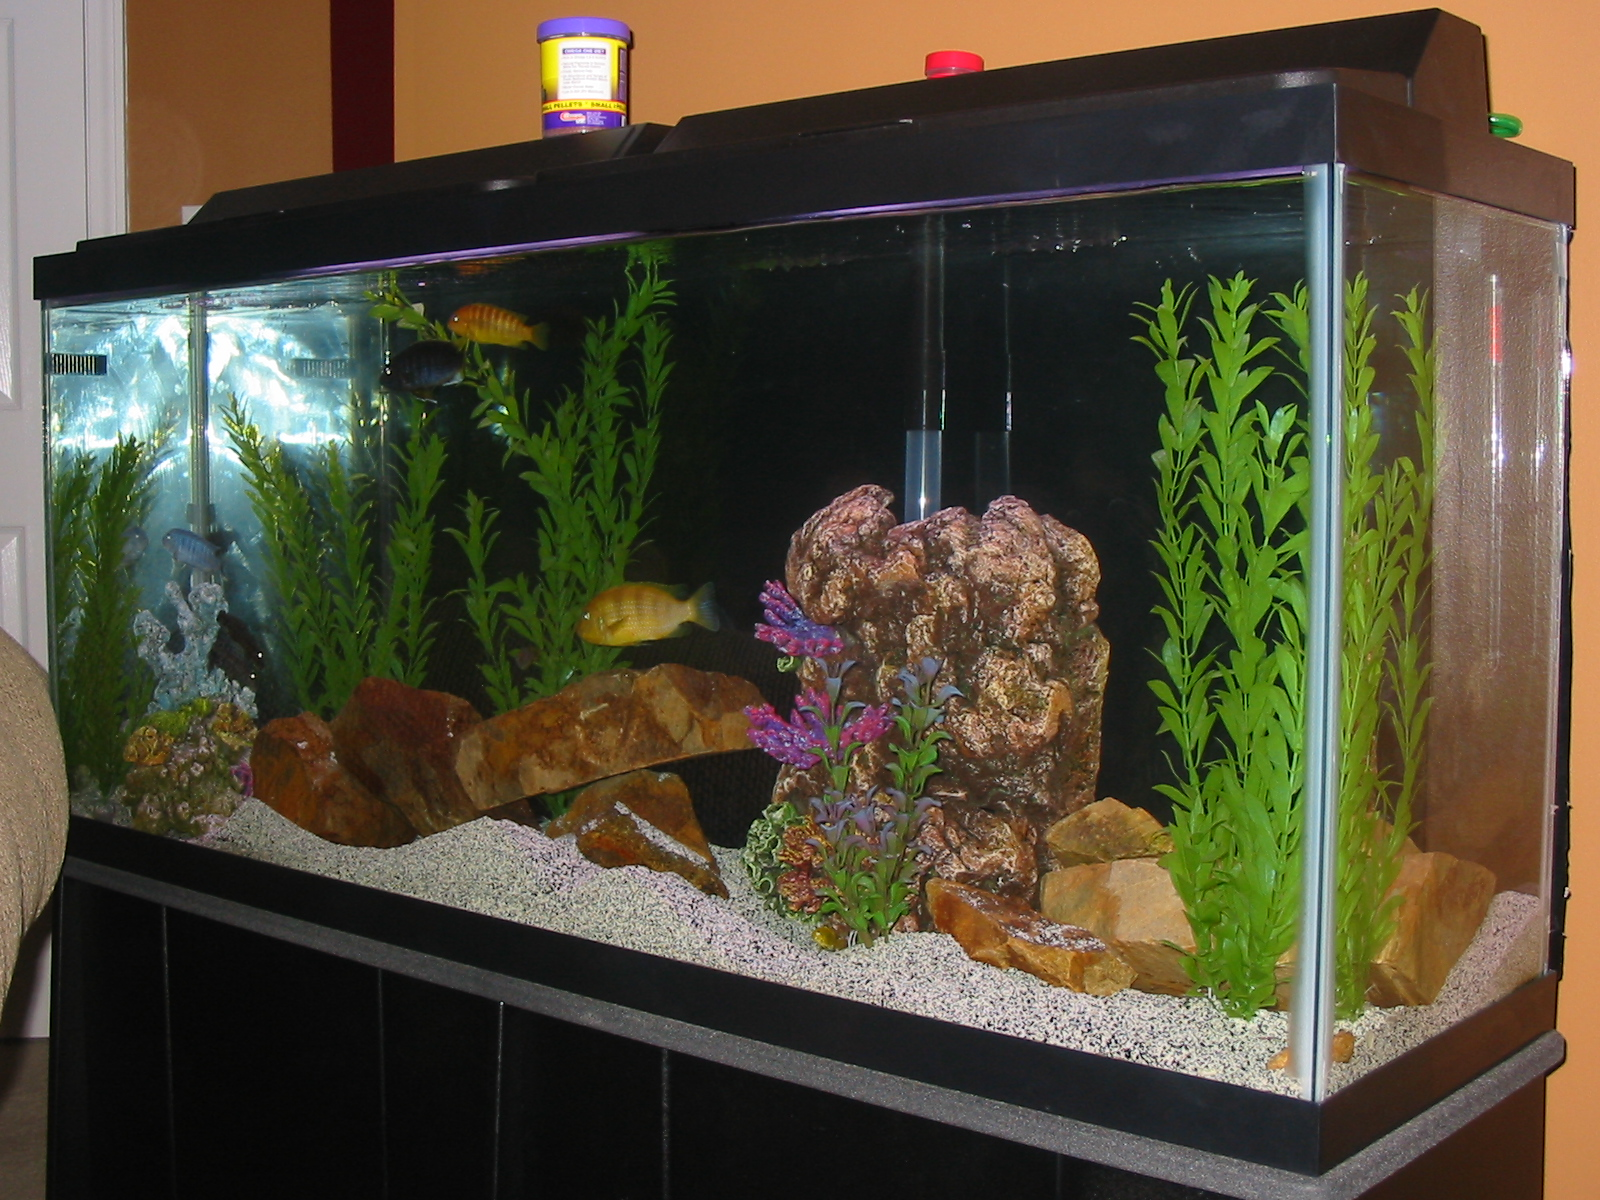 55 gallon fish tank in litres fish tank pauls 55 gallon for 55 gallon corner fish tank